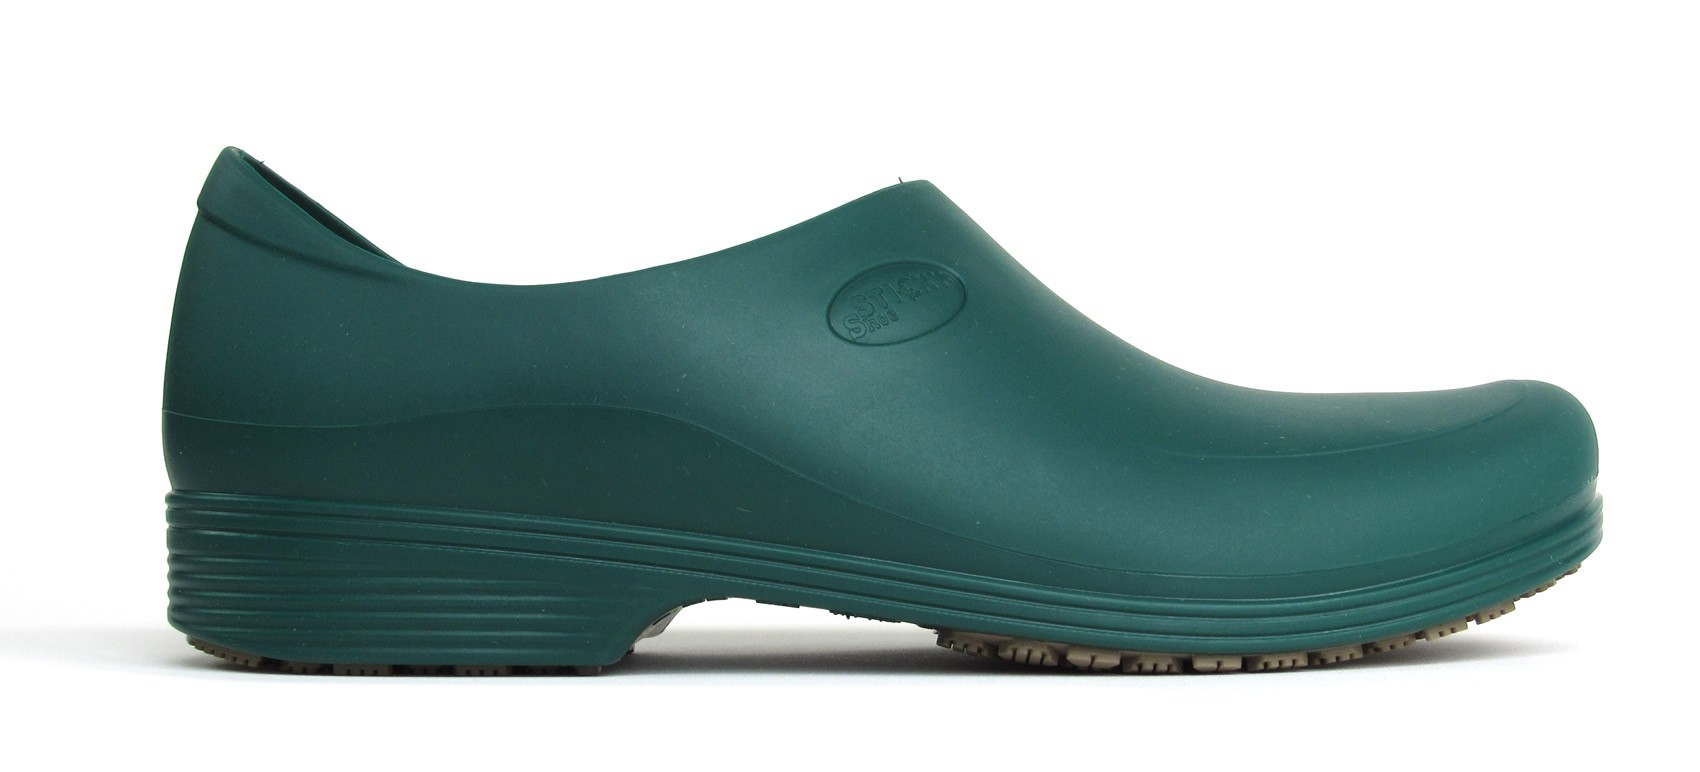 Man Non-Slip STICKY Shoes - Green